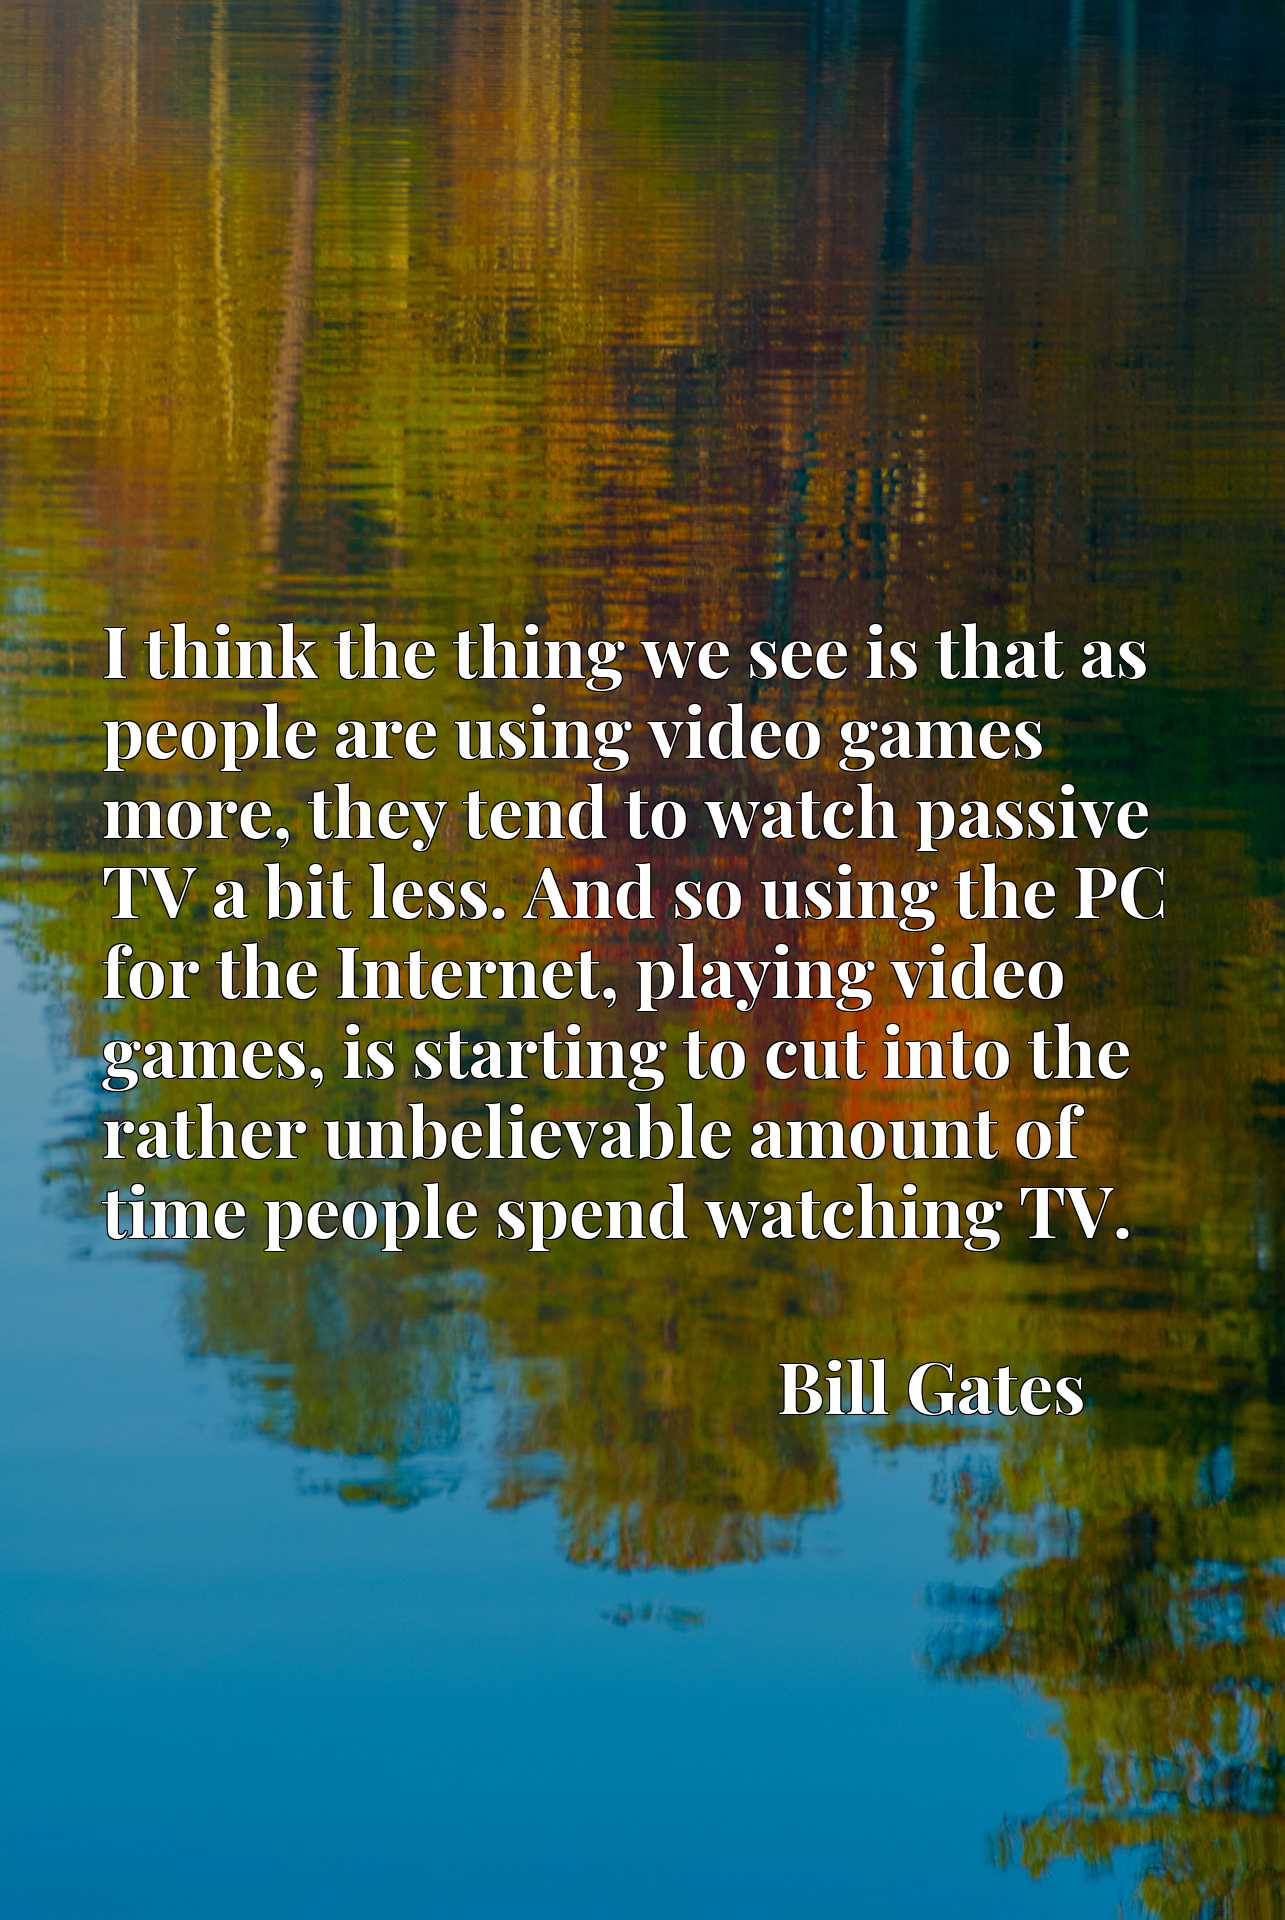 I think the thing we see is that as people are using video games more, they tend to watch passive TV a bit less. And so using the PC for the Internet, playing video games, is starting to cut into the rather unbelievable amount of time people spend watching TV.